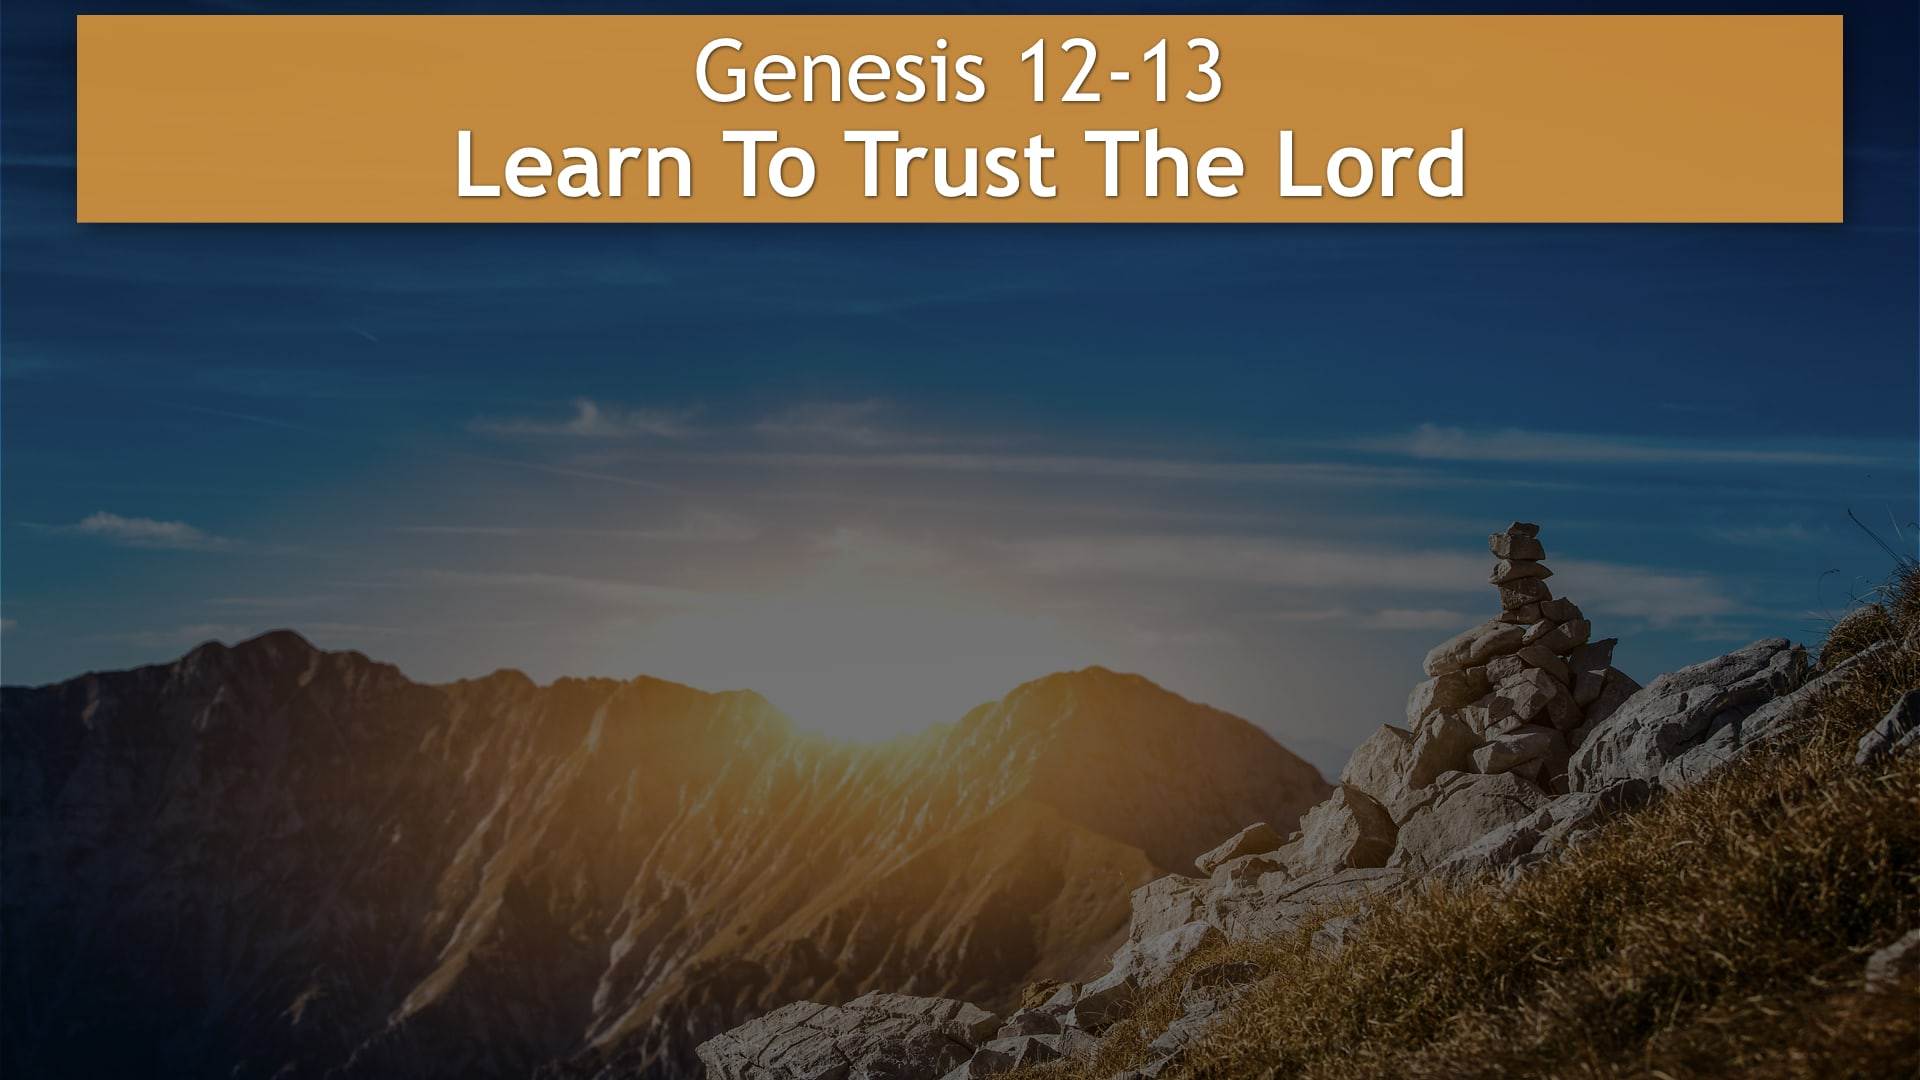 Genesis 12-13, Learn To Trust The Lord